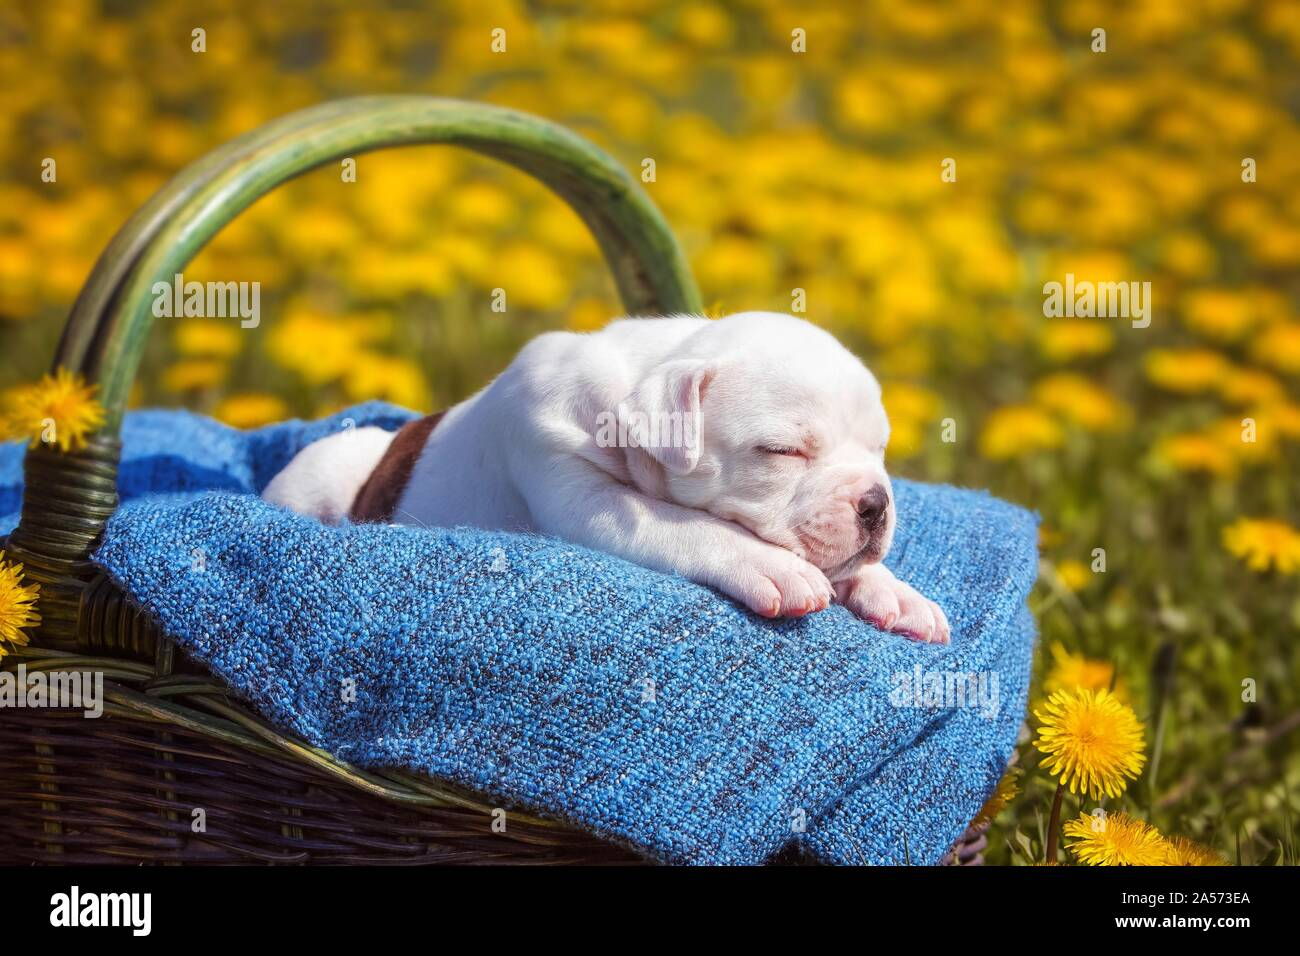 American Bulldog Puppy in a basket Stock Photo